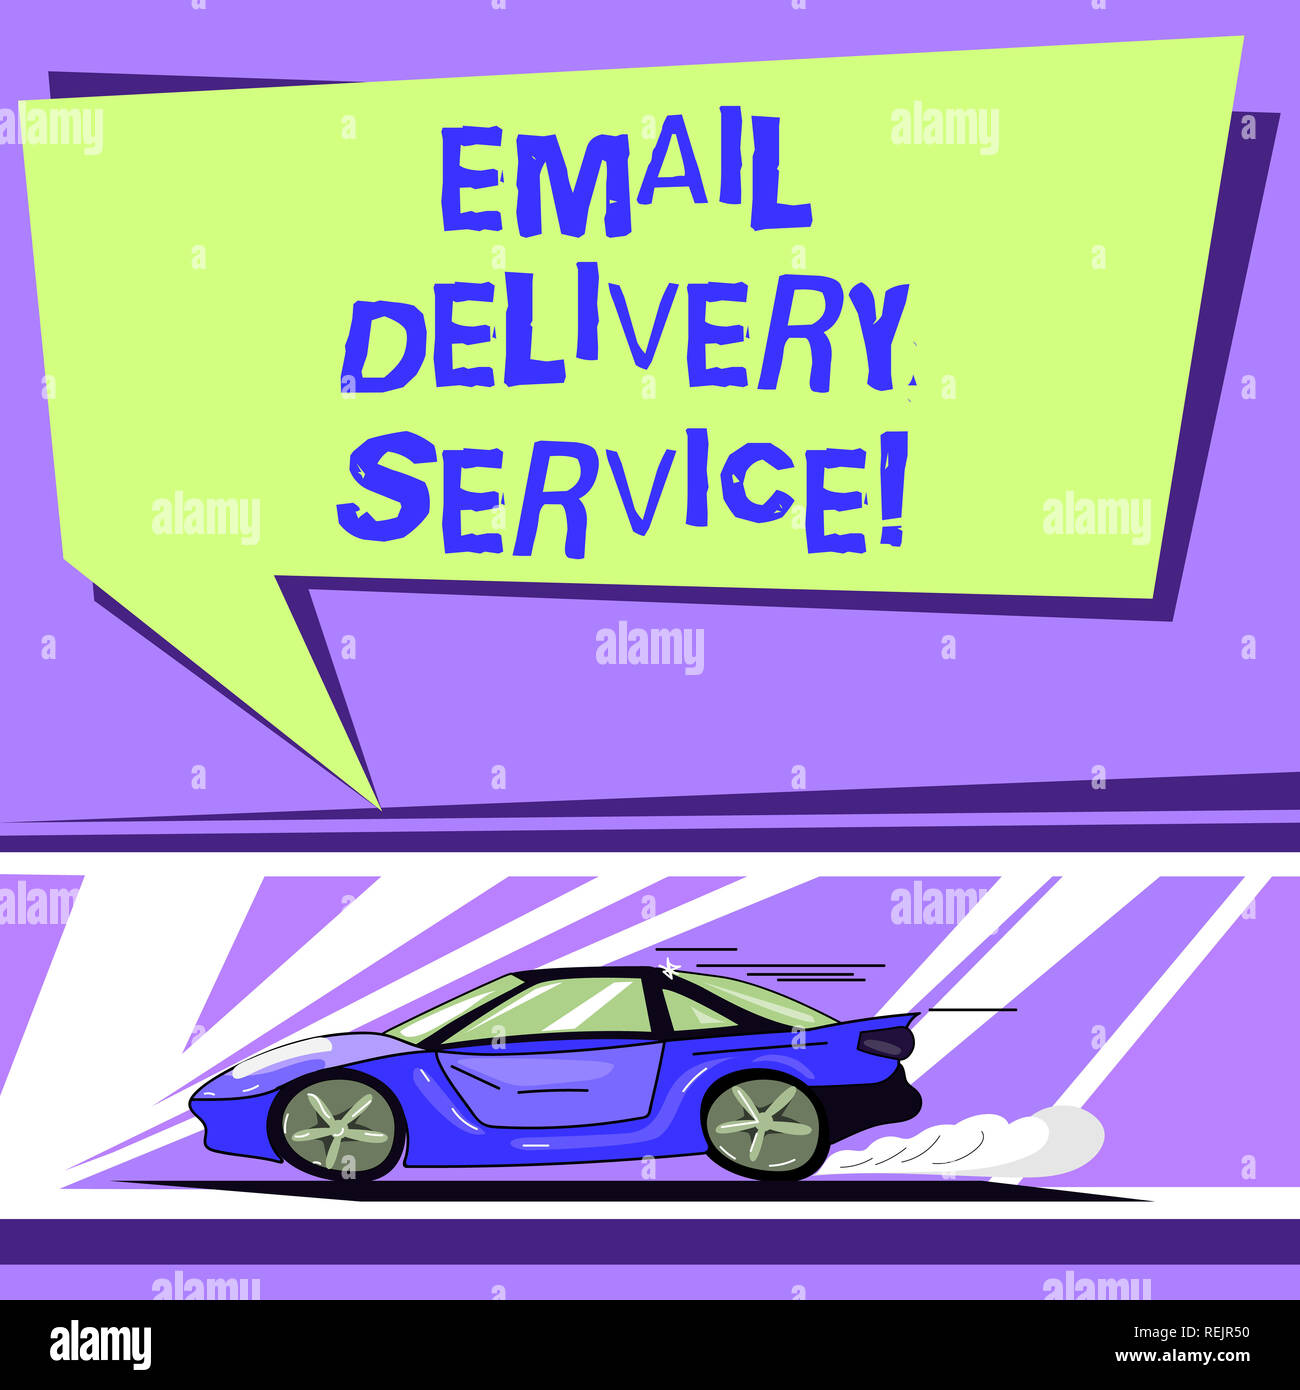 Word writing text Email Delivery Service. Business concept for email marketing platform or tools in sending messages Car with Fast Movement icon and E - Stock Image